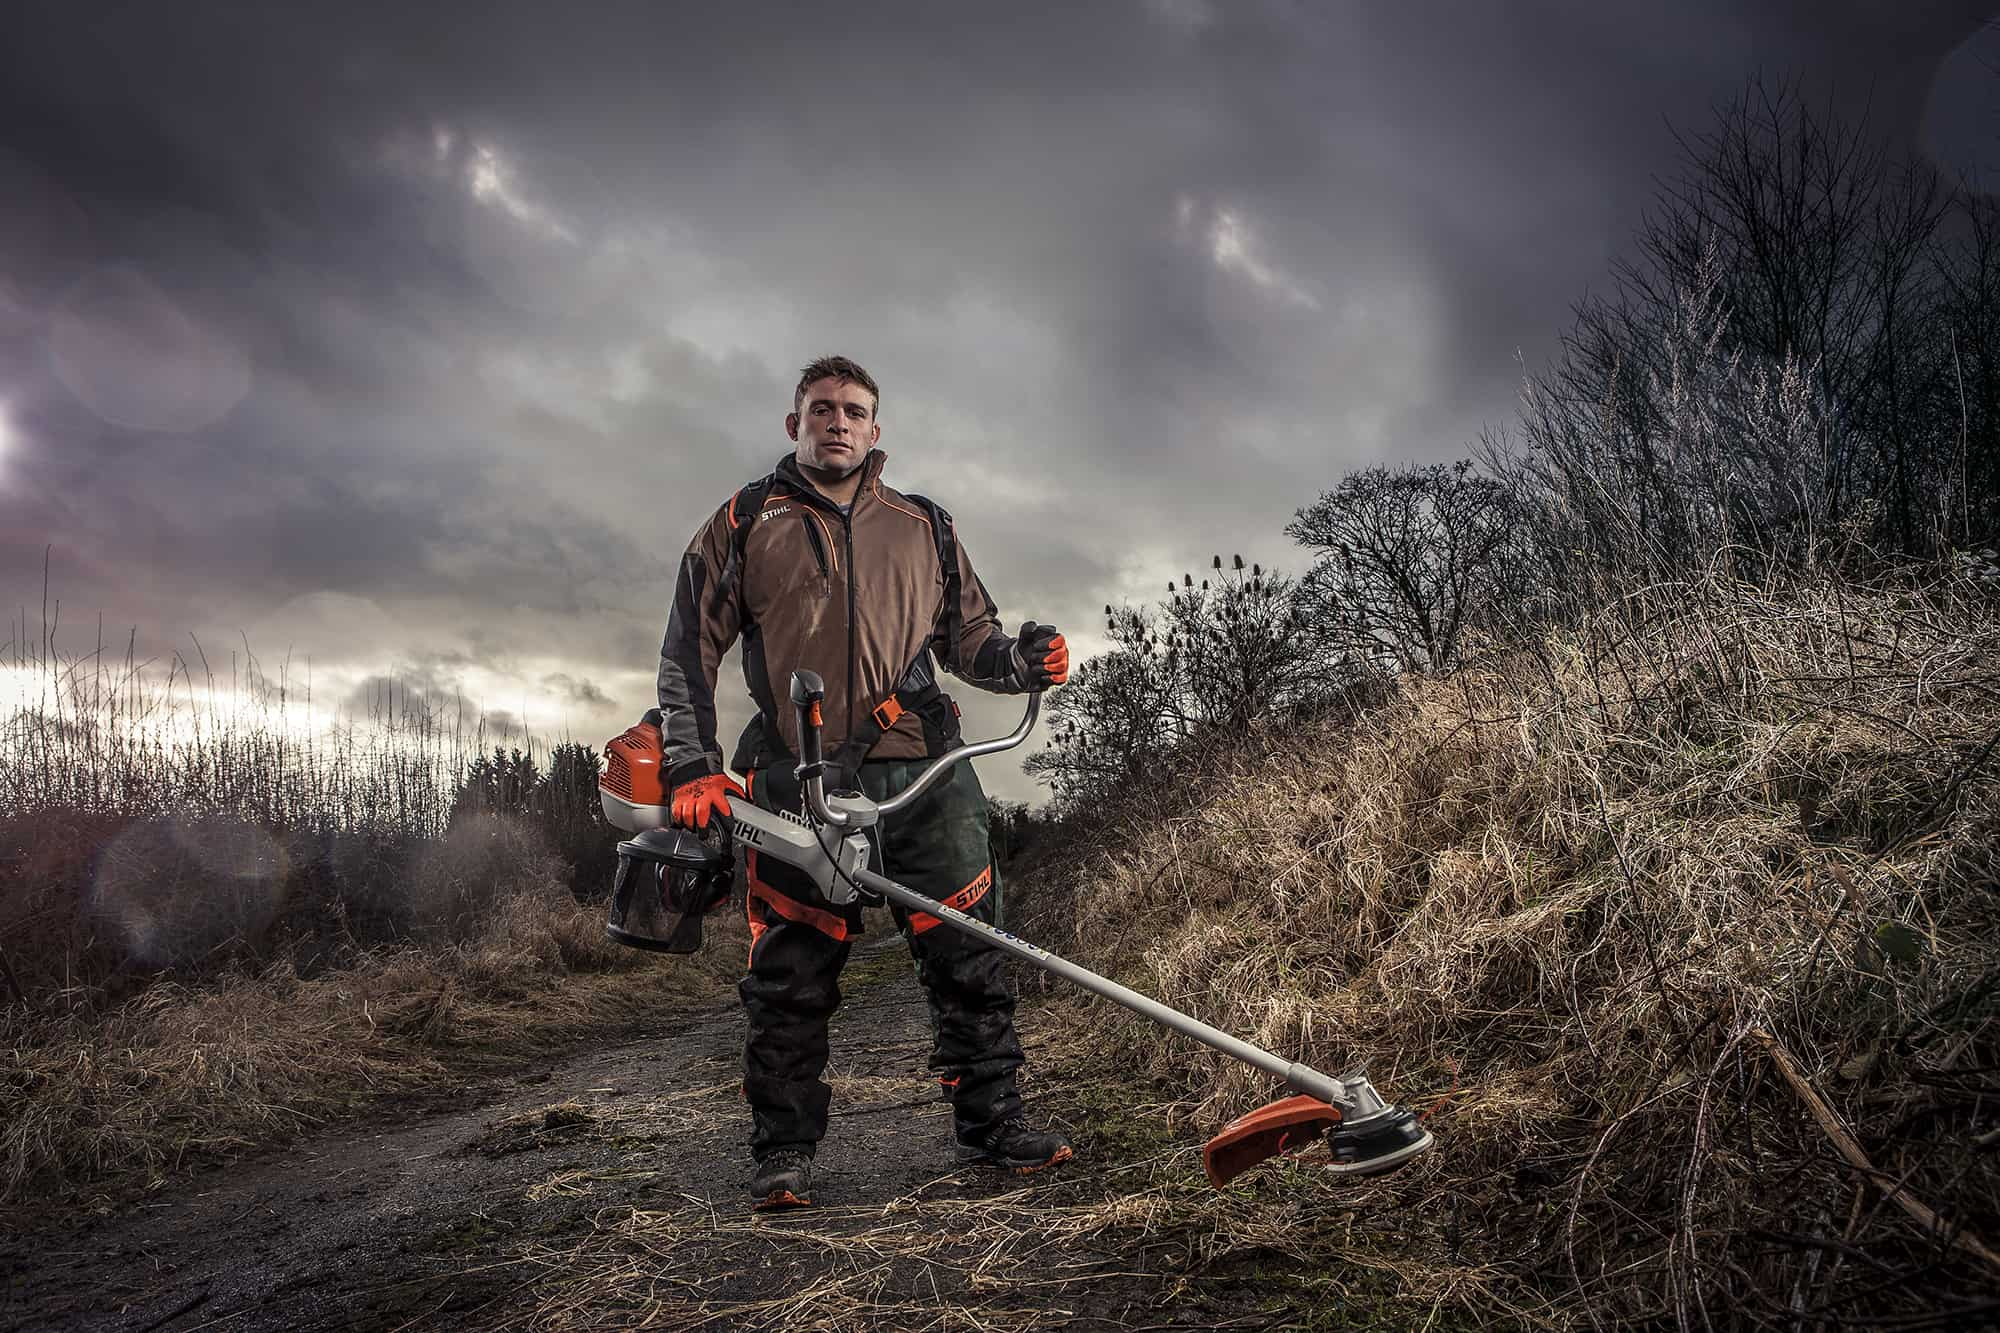 Tom-Youngs-Stihl-Bushcutter location photography